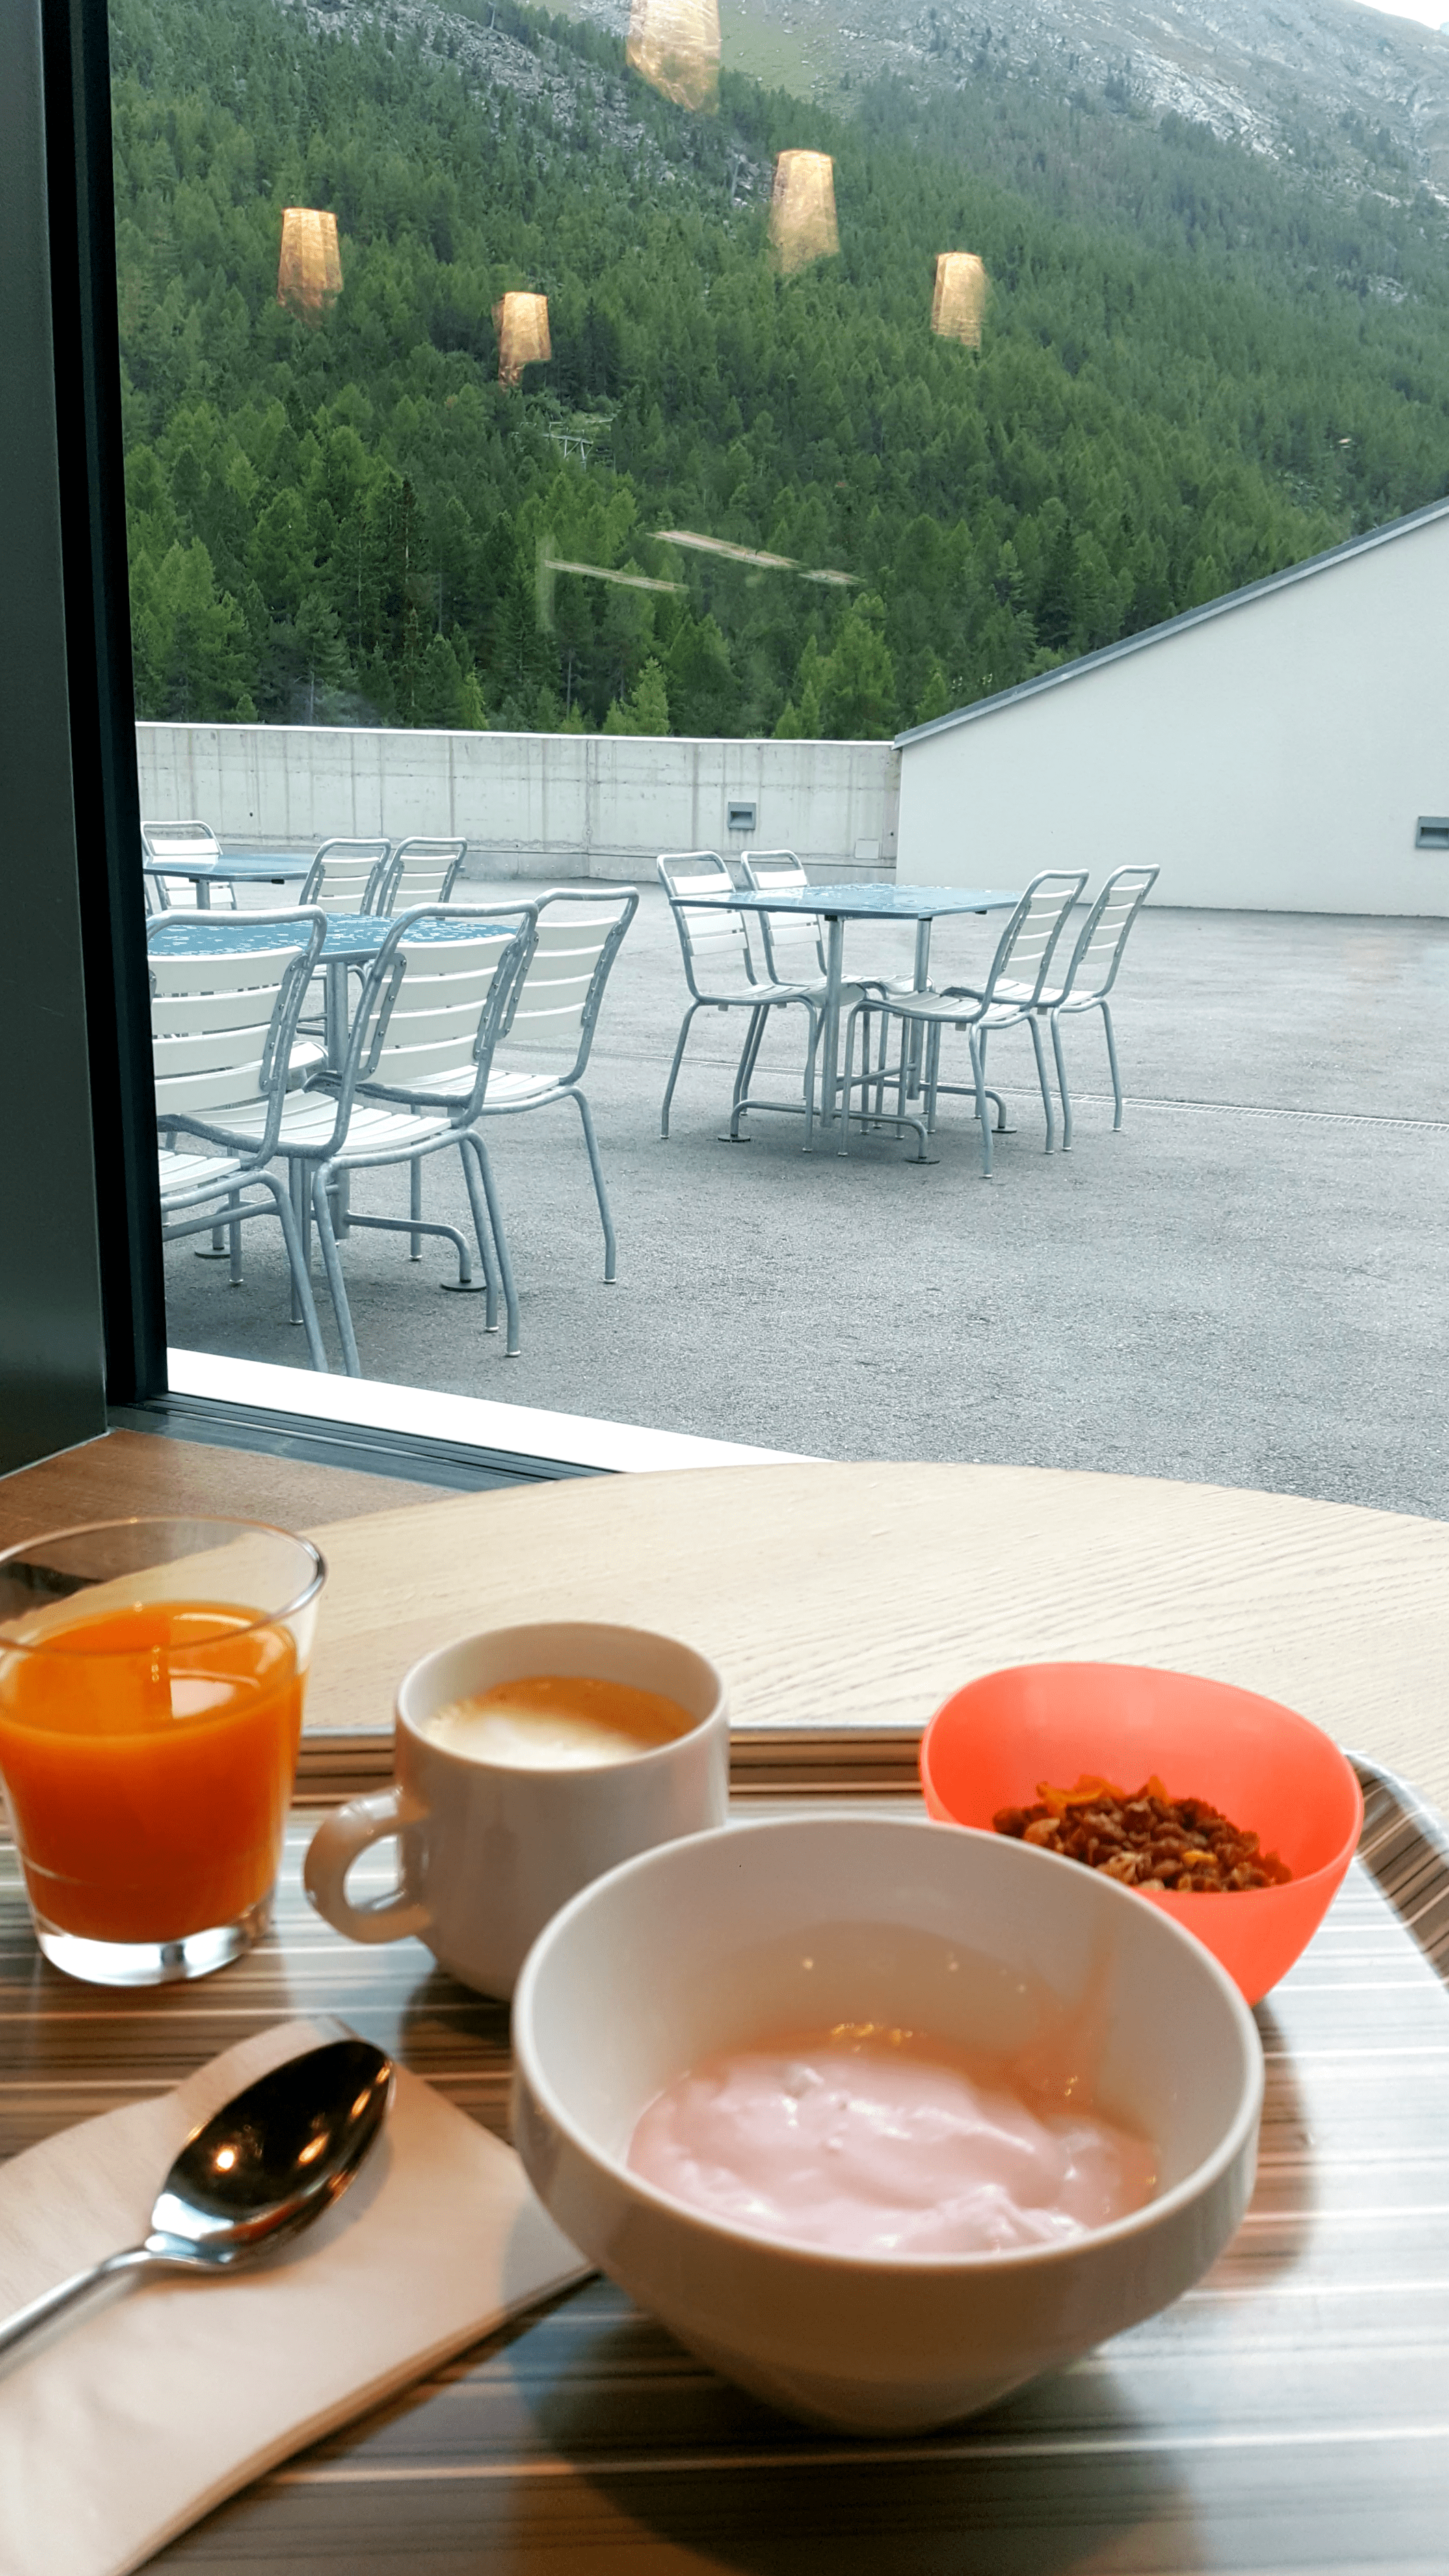 wellnessHostel4000 Saas-Fee Switzerland Breakfast with Alpine View.png